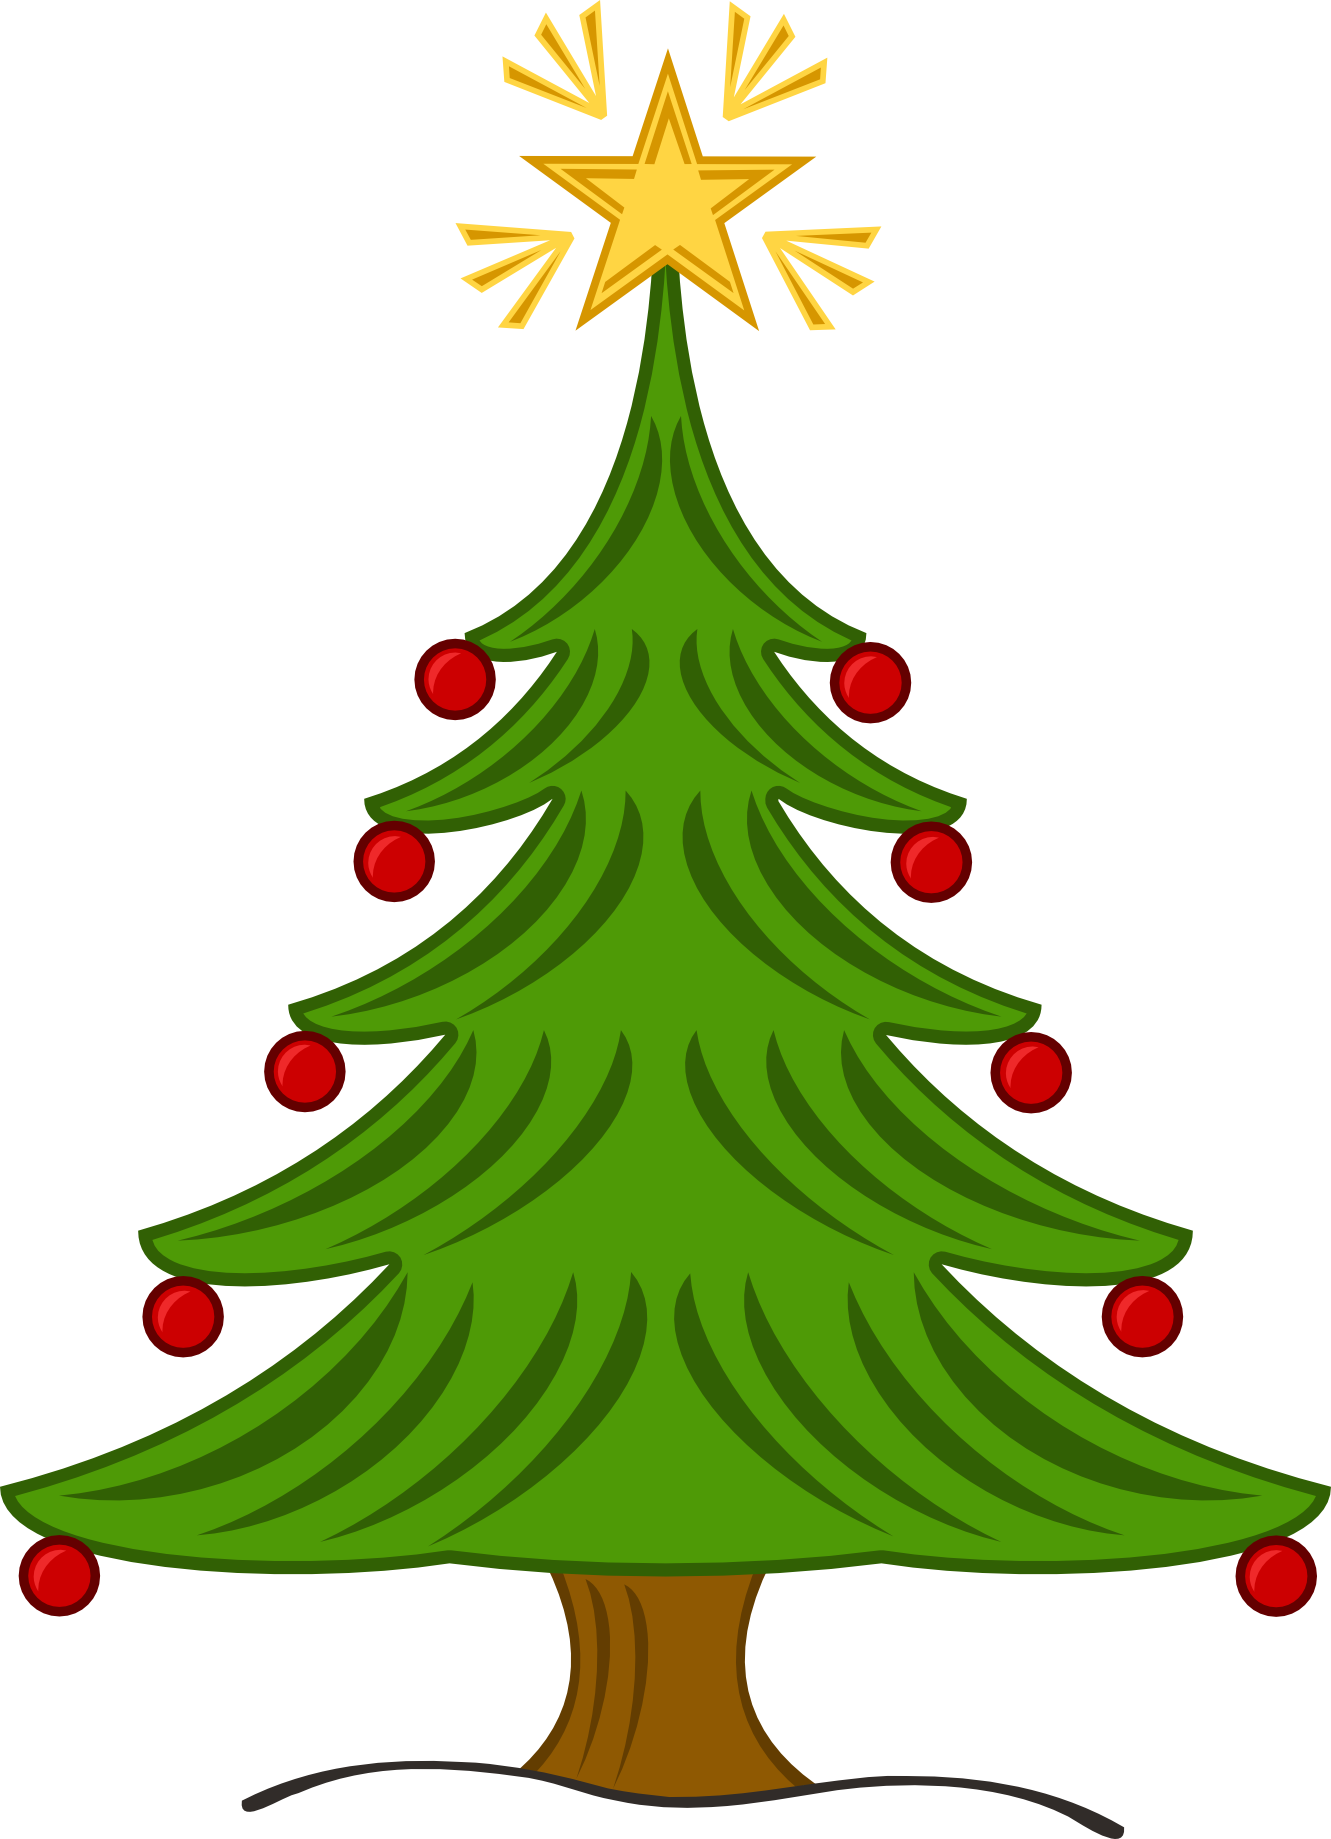 Christmas tree clipart images clip art library stock Christmas tree clip art | Clipart Panda - Free Clipart Images clip art library stock